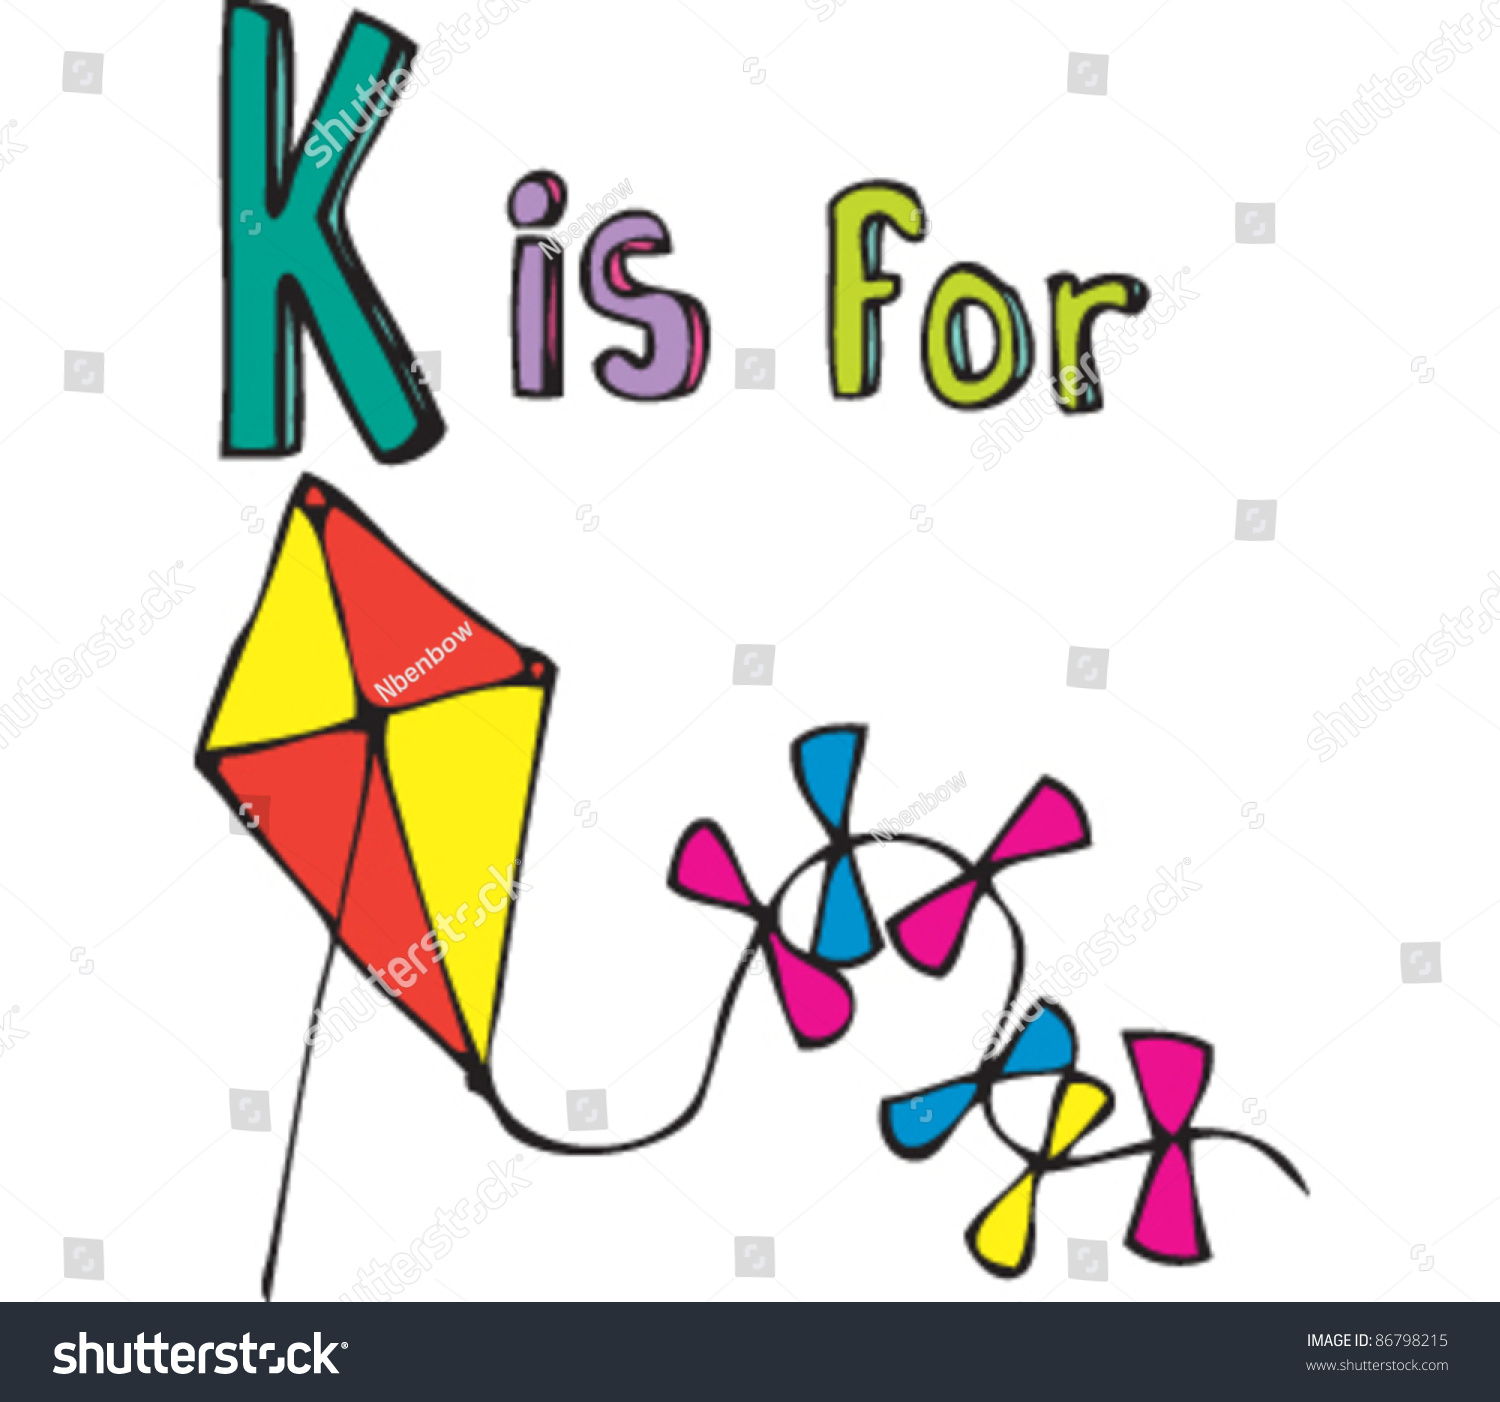 stock-vector-drawing-of-letter-k-is-for-kite-86798215 Opt Out Letter Template on pension email, participating form, training waiver, form for meals, permission slip for school,